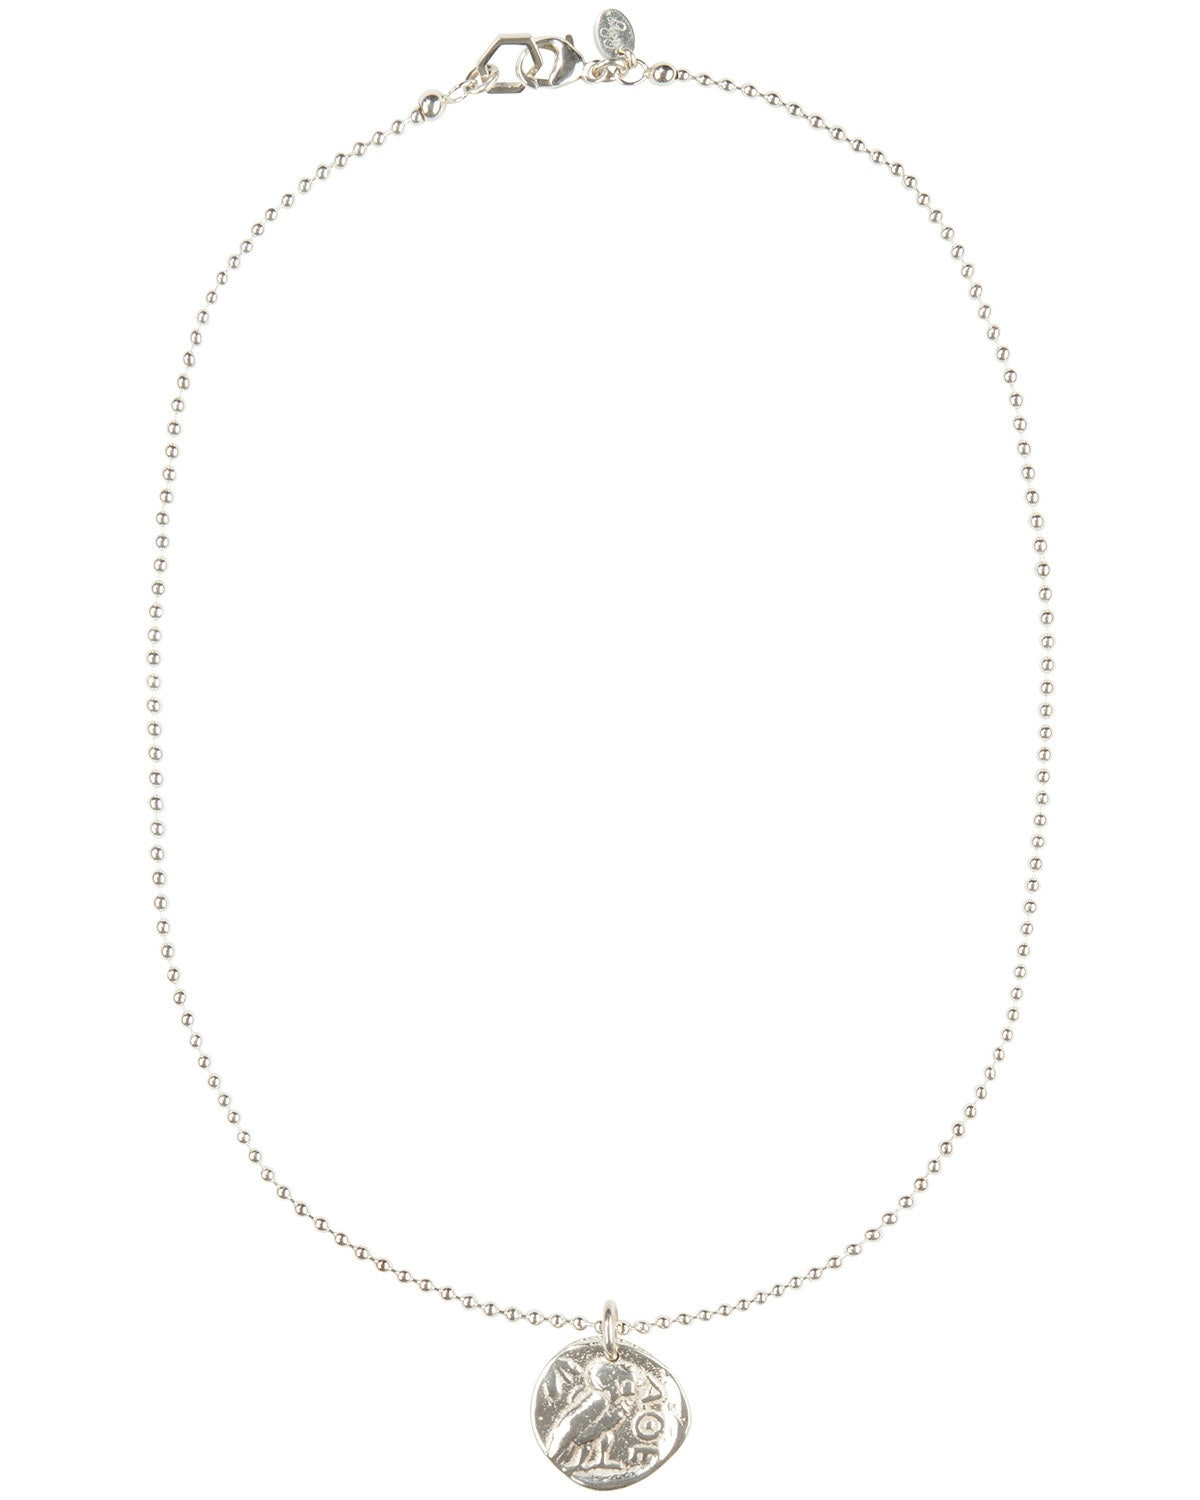 Kette, Necklace, Silver, Chaingang, Lodenfrey